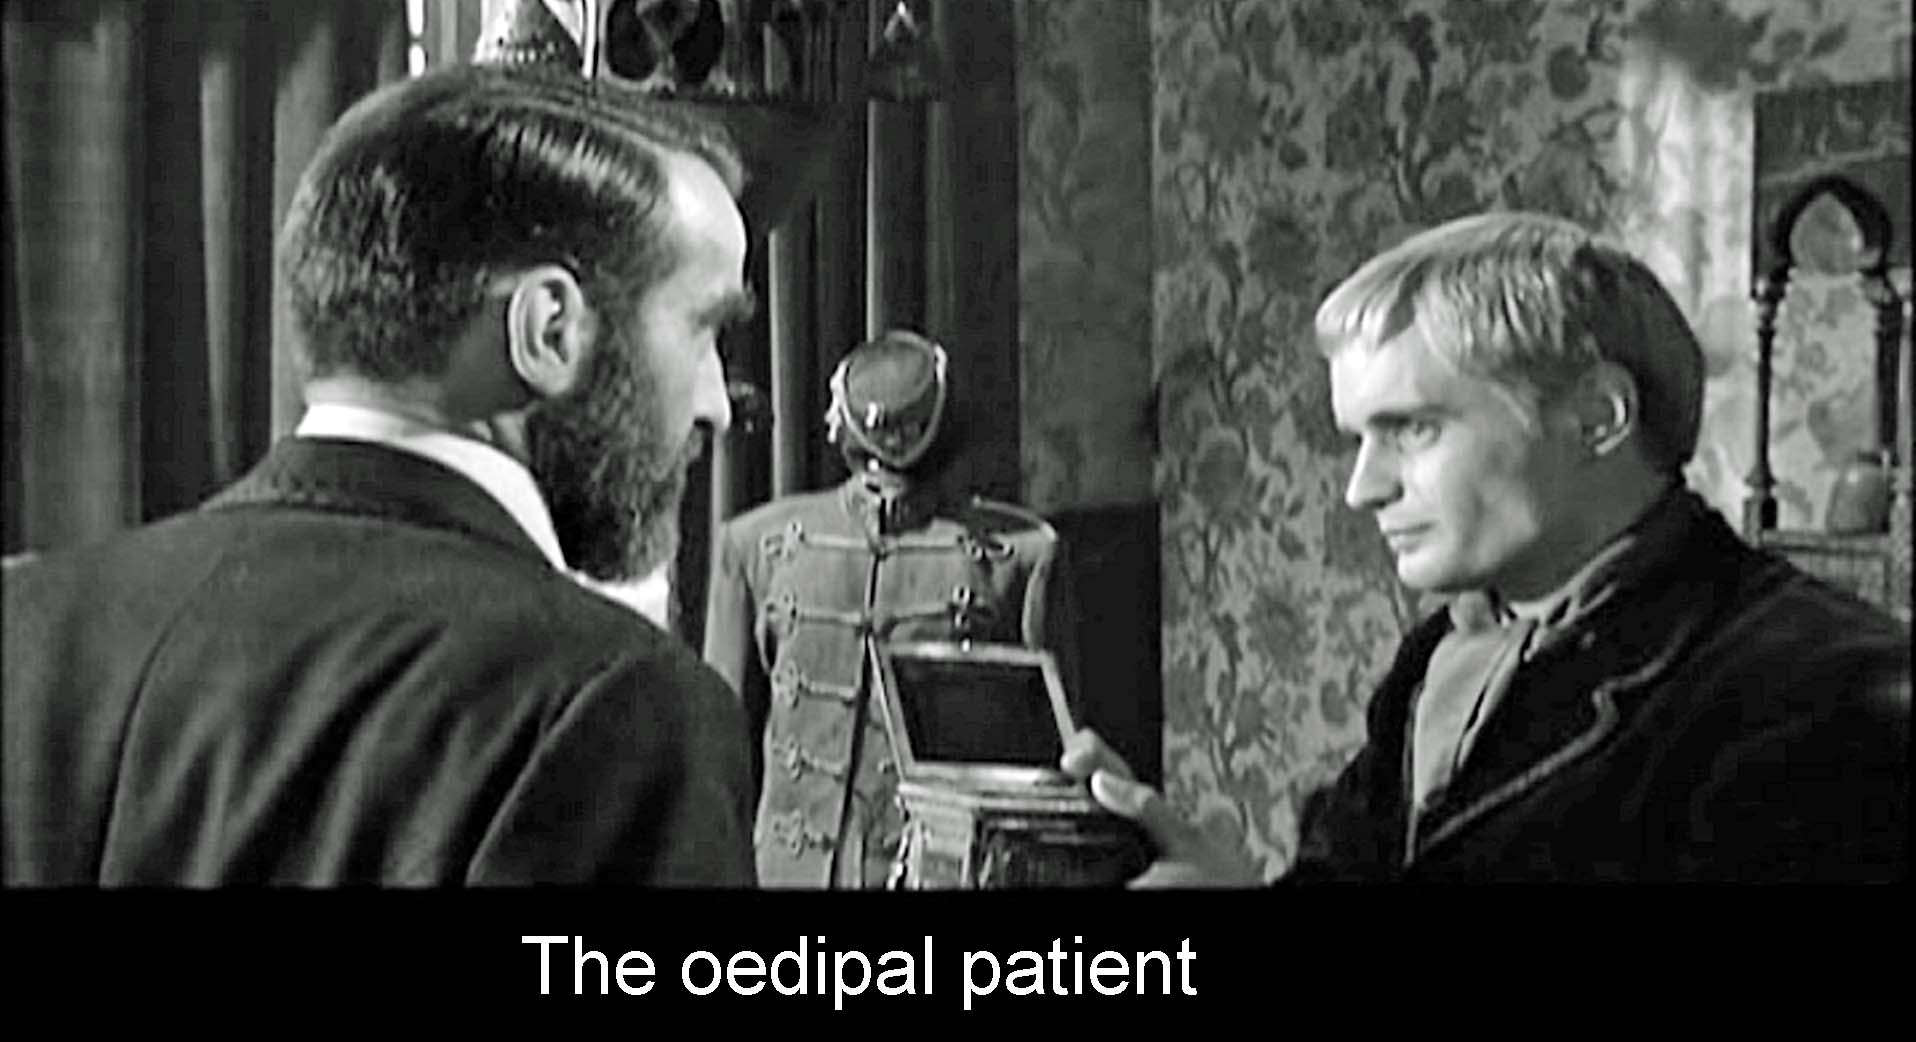 The oedipal patient